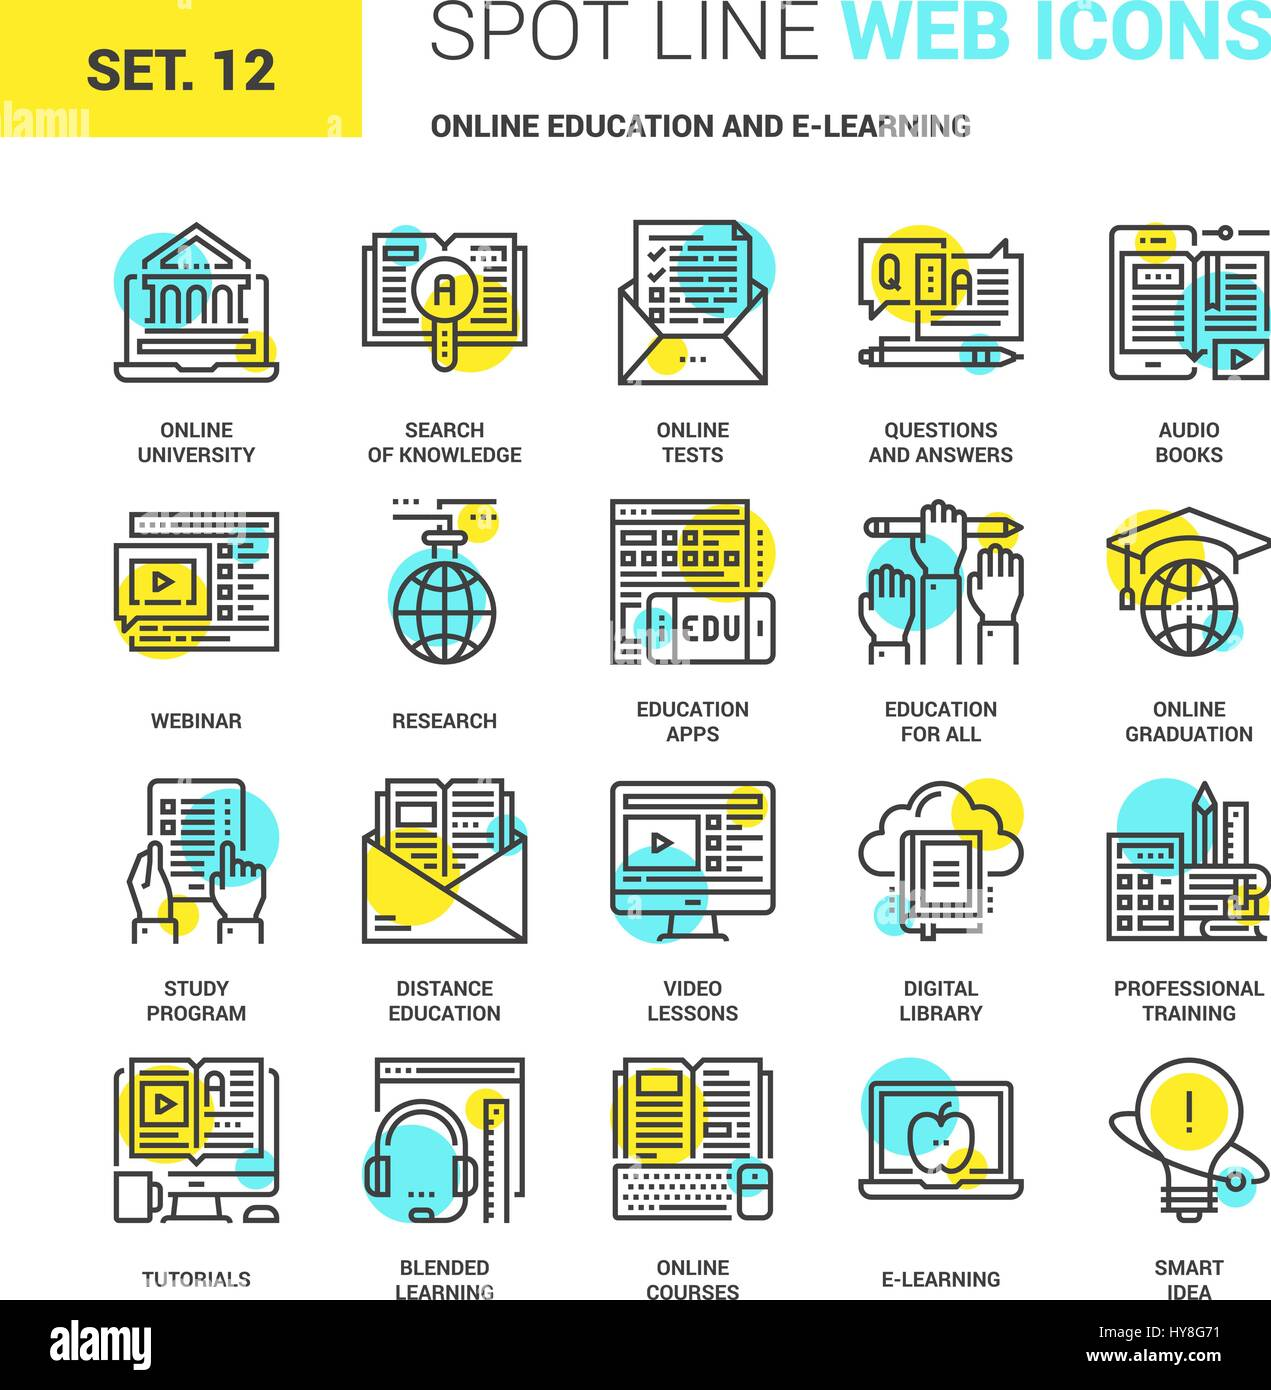 Online Education and E-learning - Stock Image